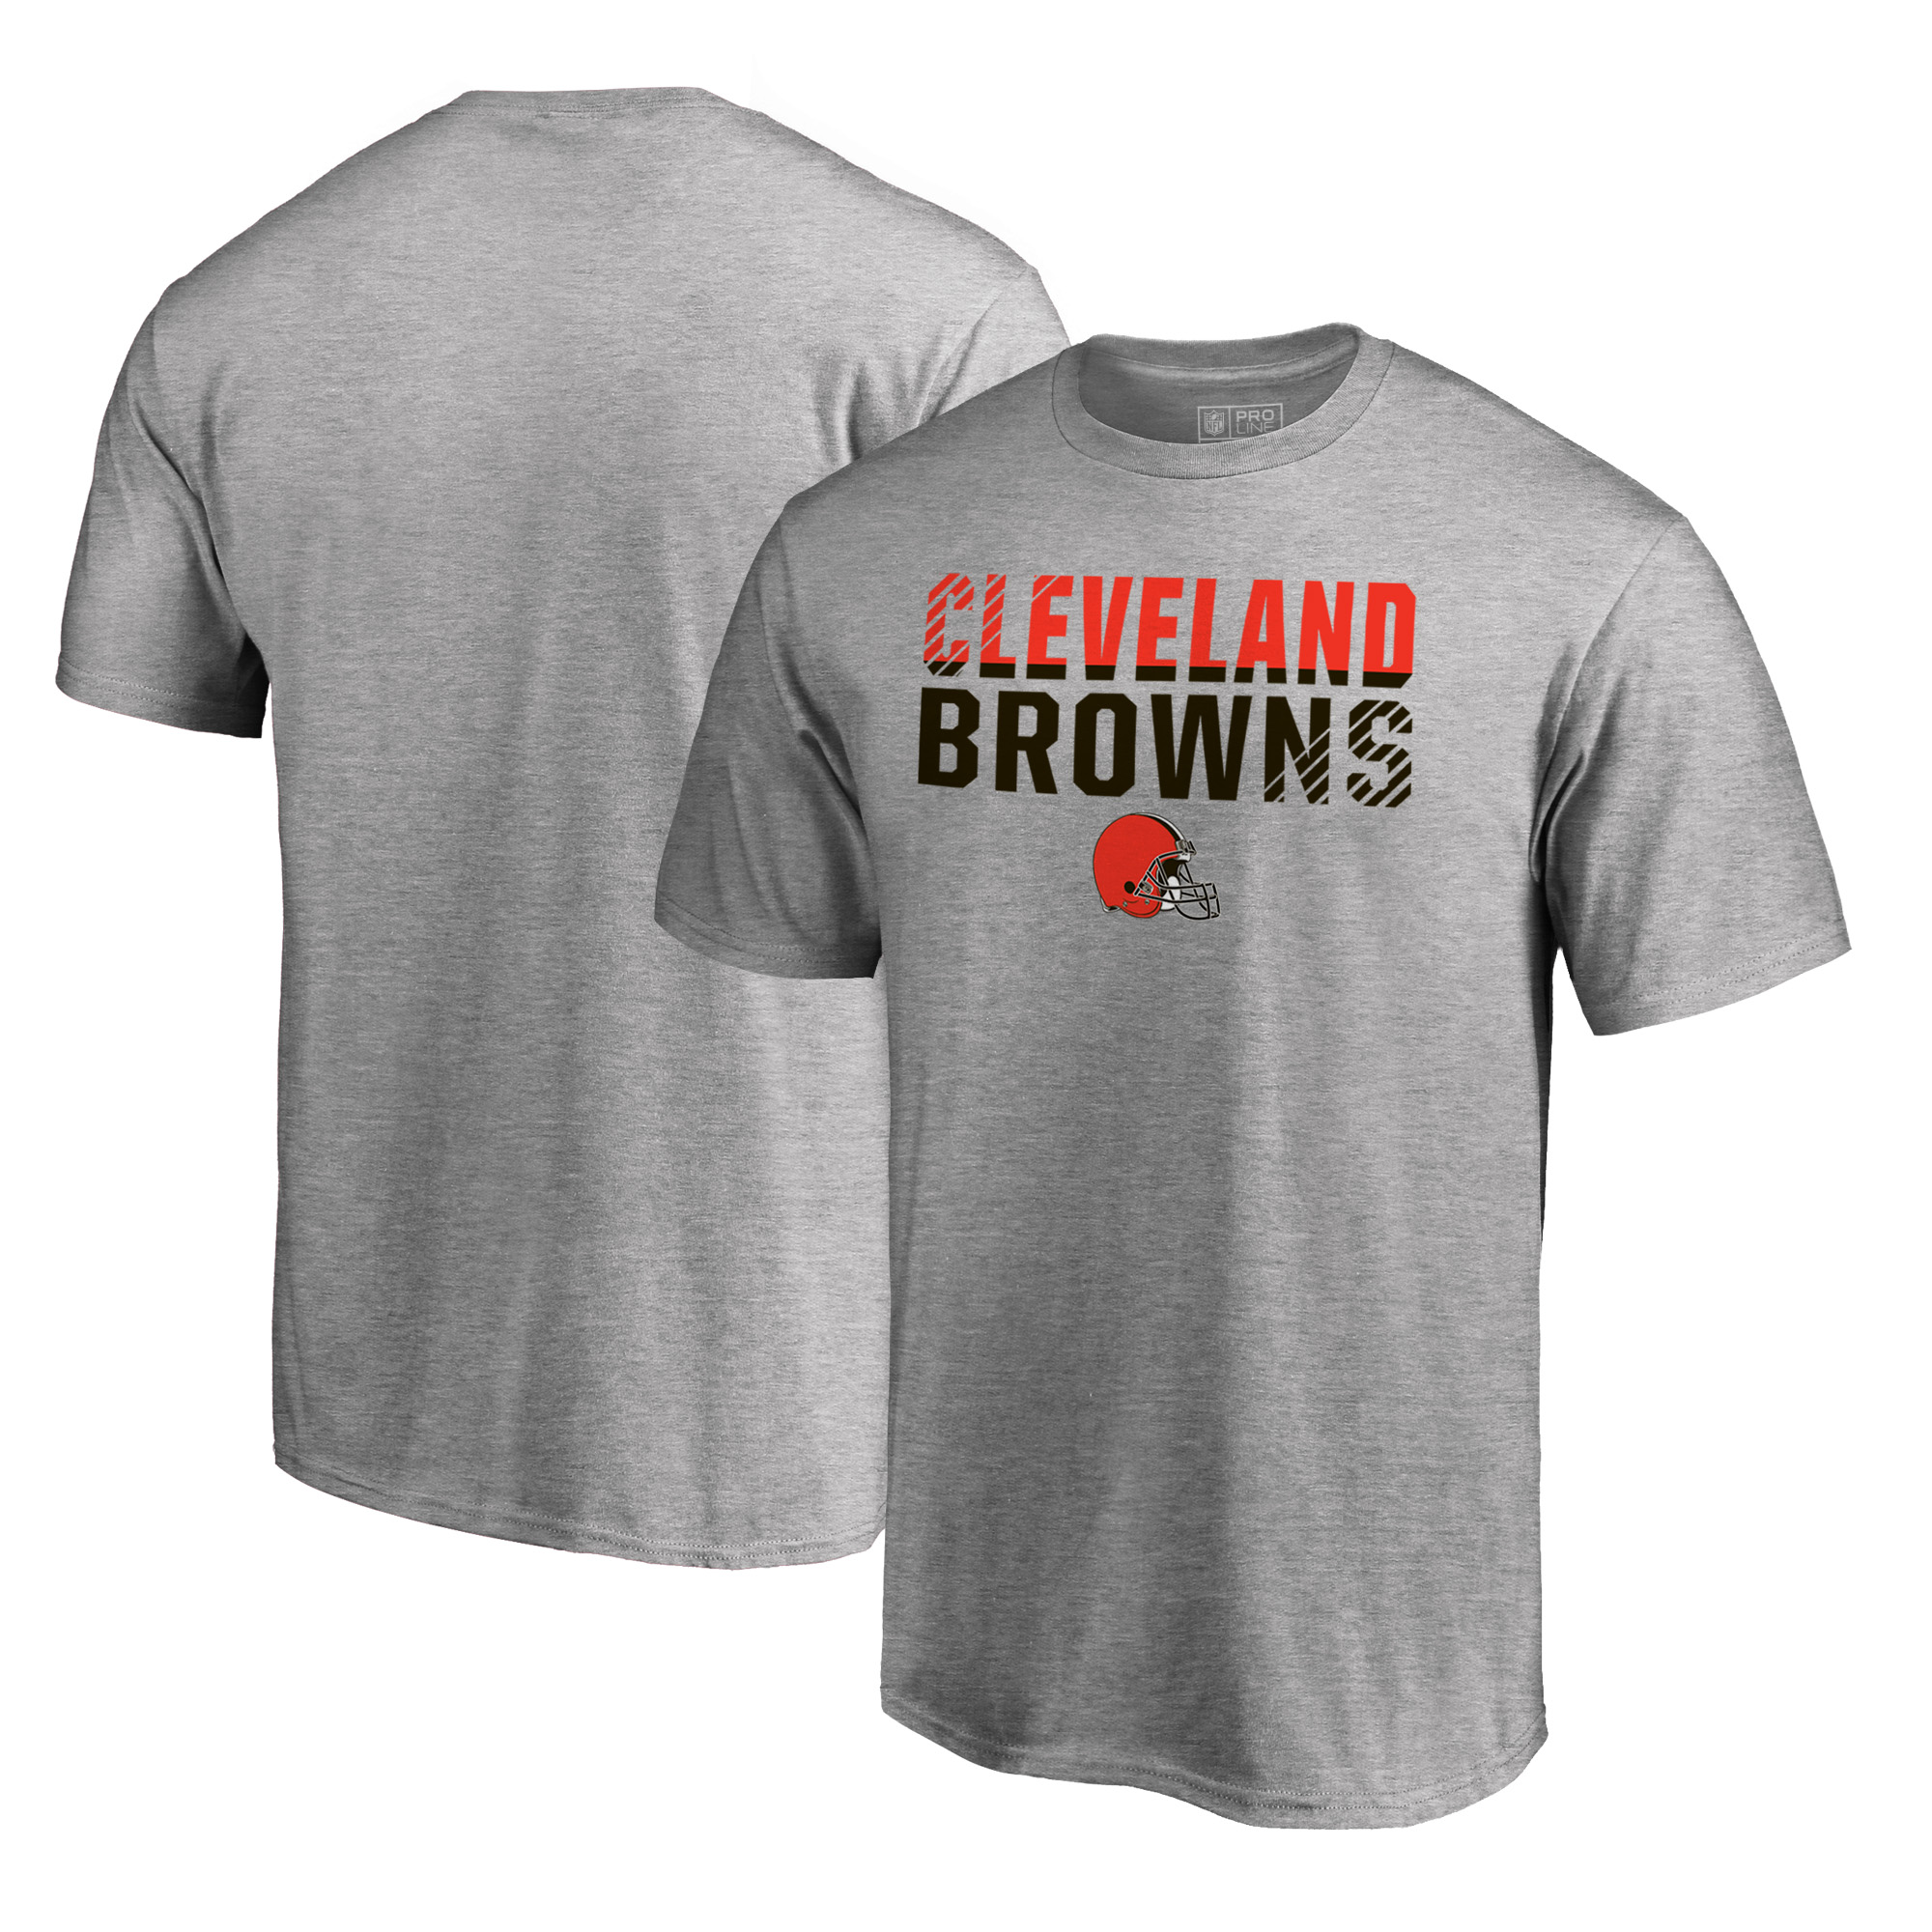 Cleveland Browns NFL Pro Line by Fanatics Branded Iconic Collection Fade Out Big and Tall T-Shirt - Ash